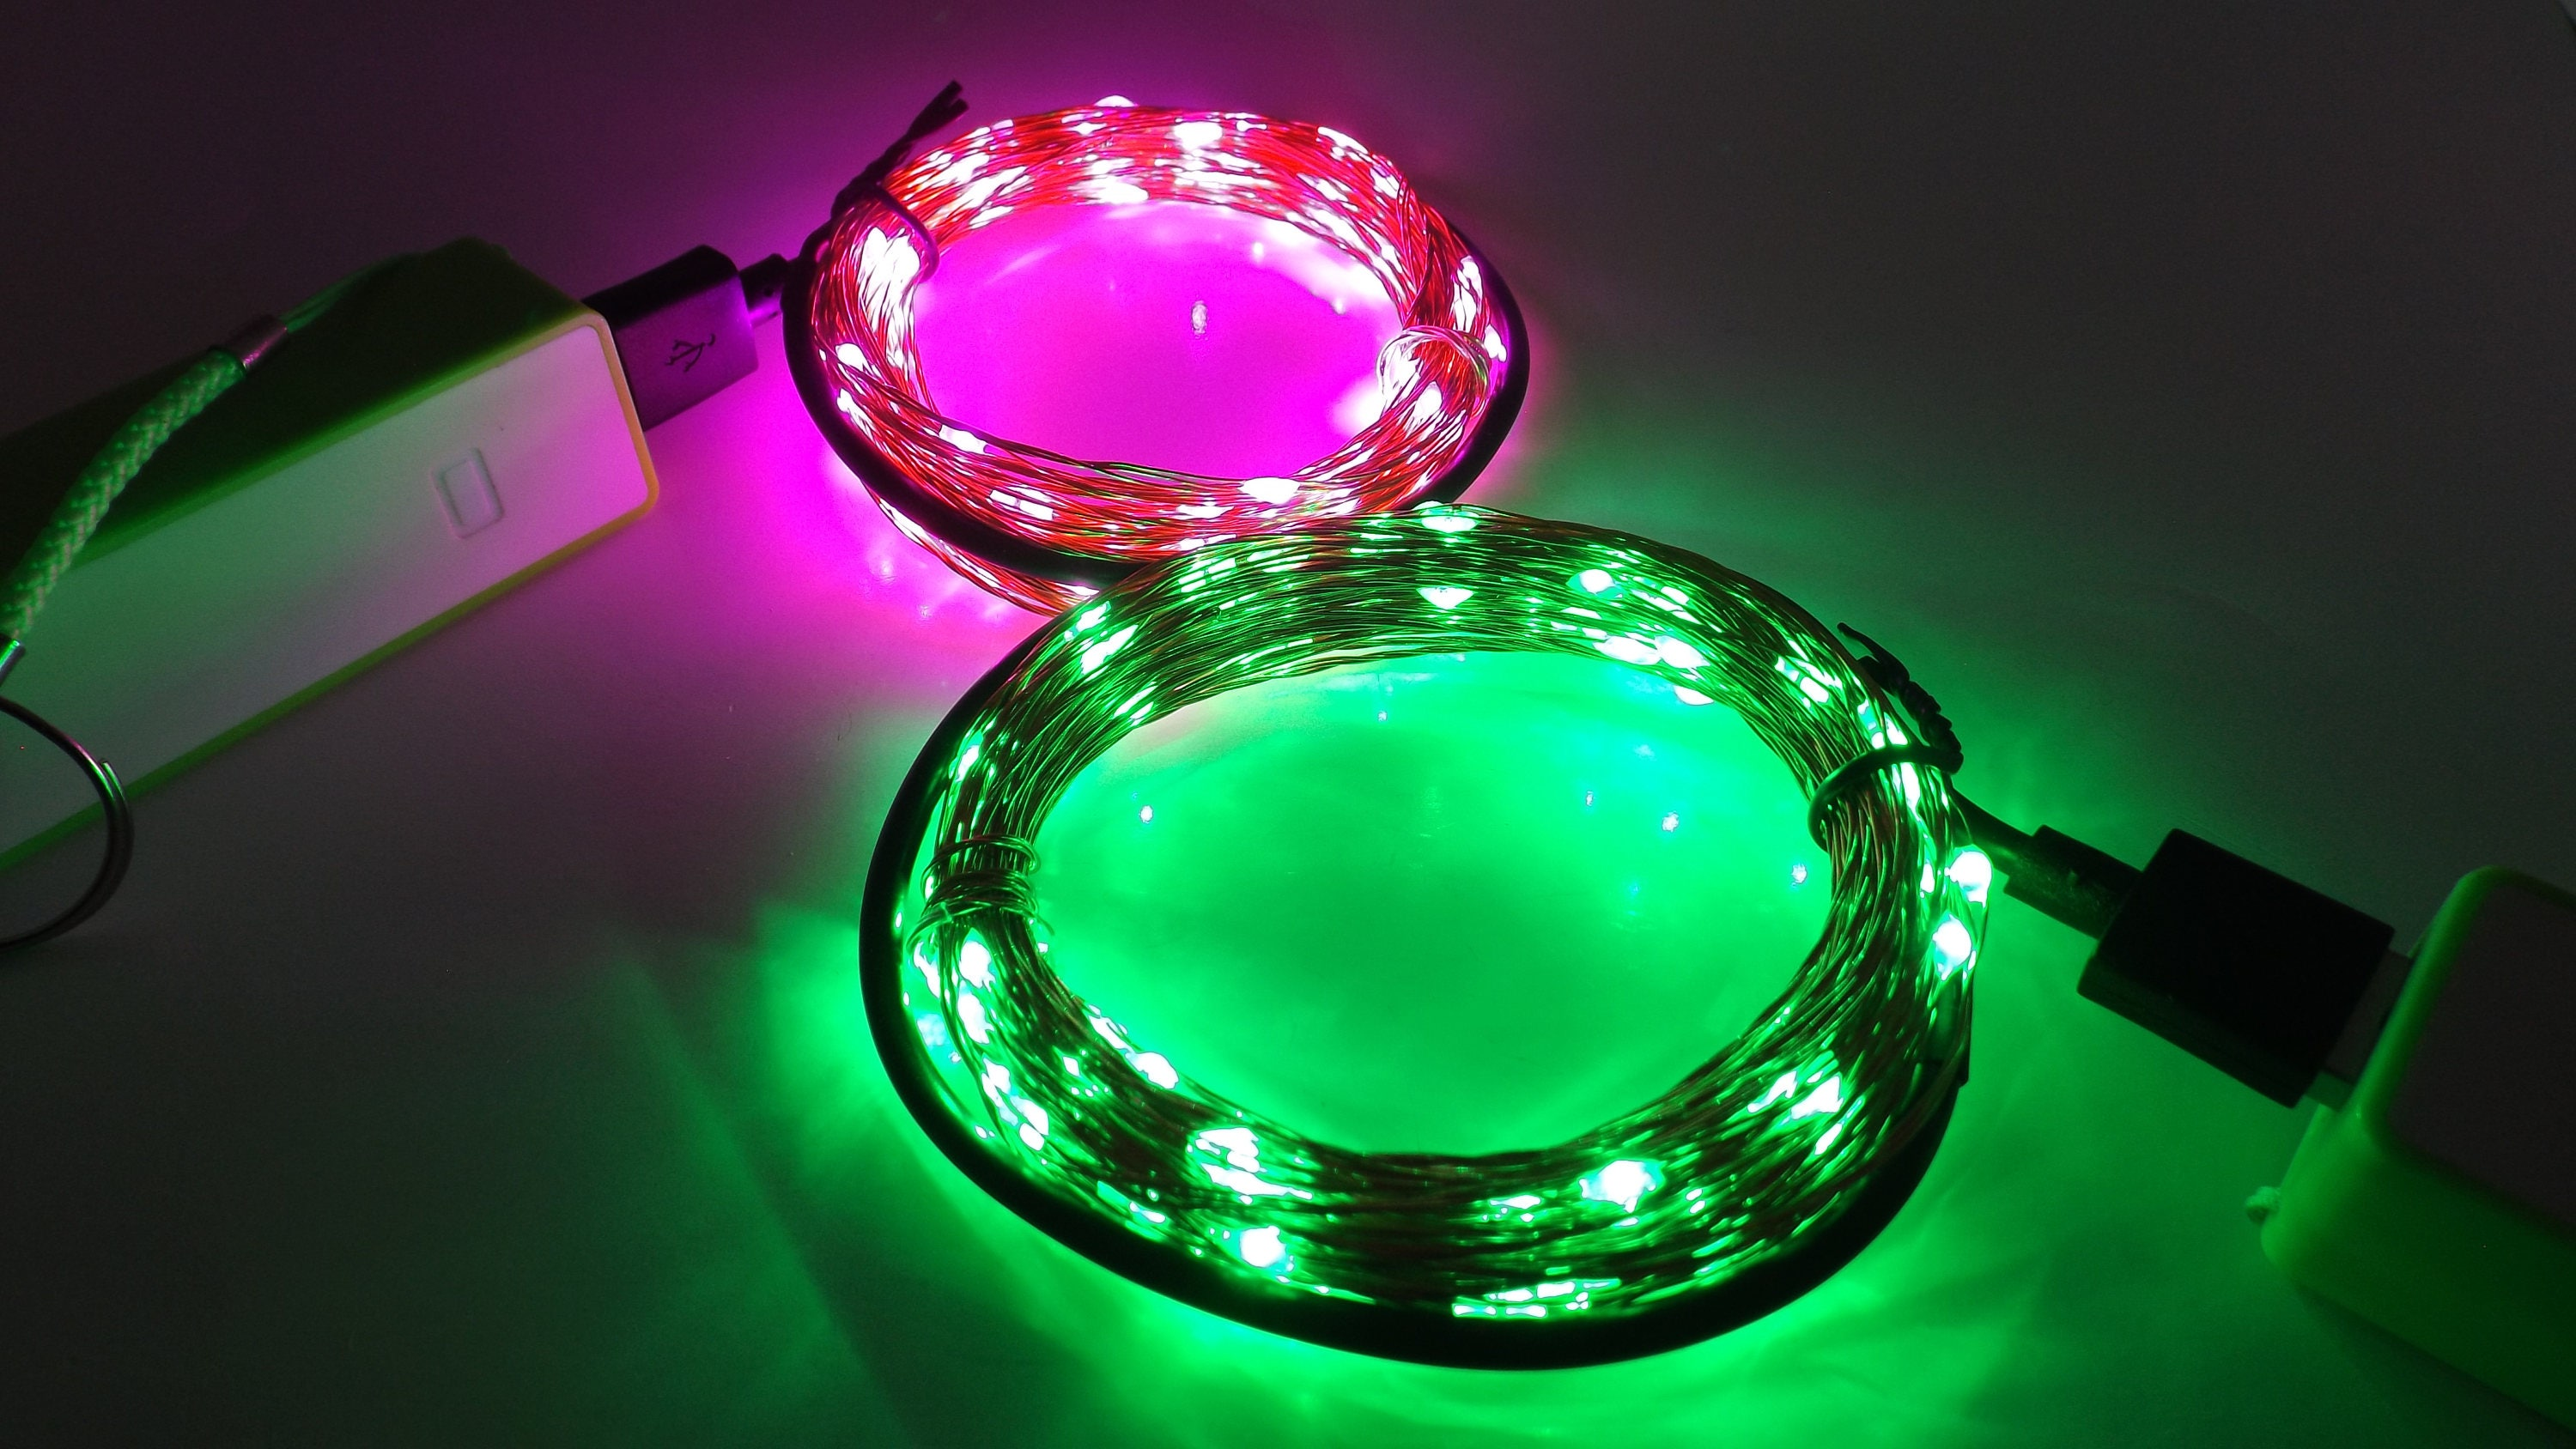 led lights trendy interior places glowing green use that in corridor design pink also wall with can lighting house home